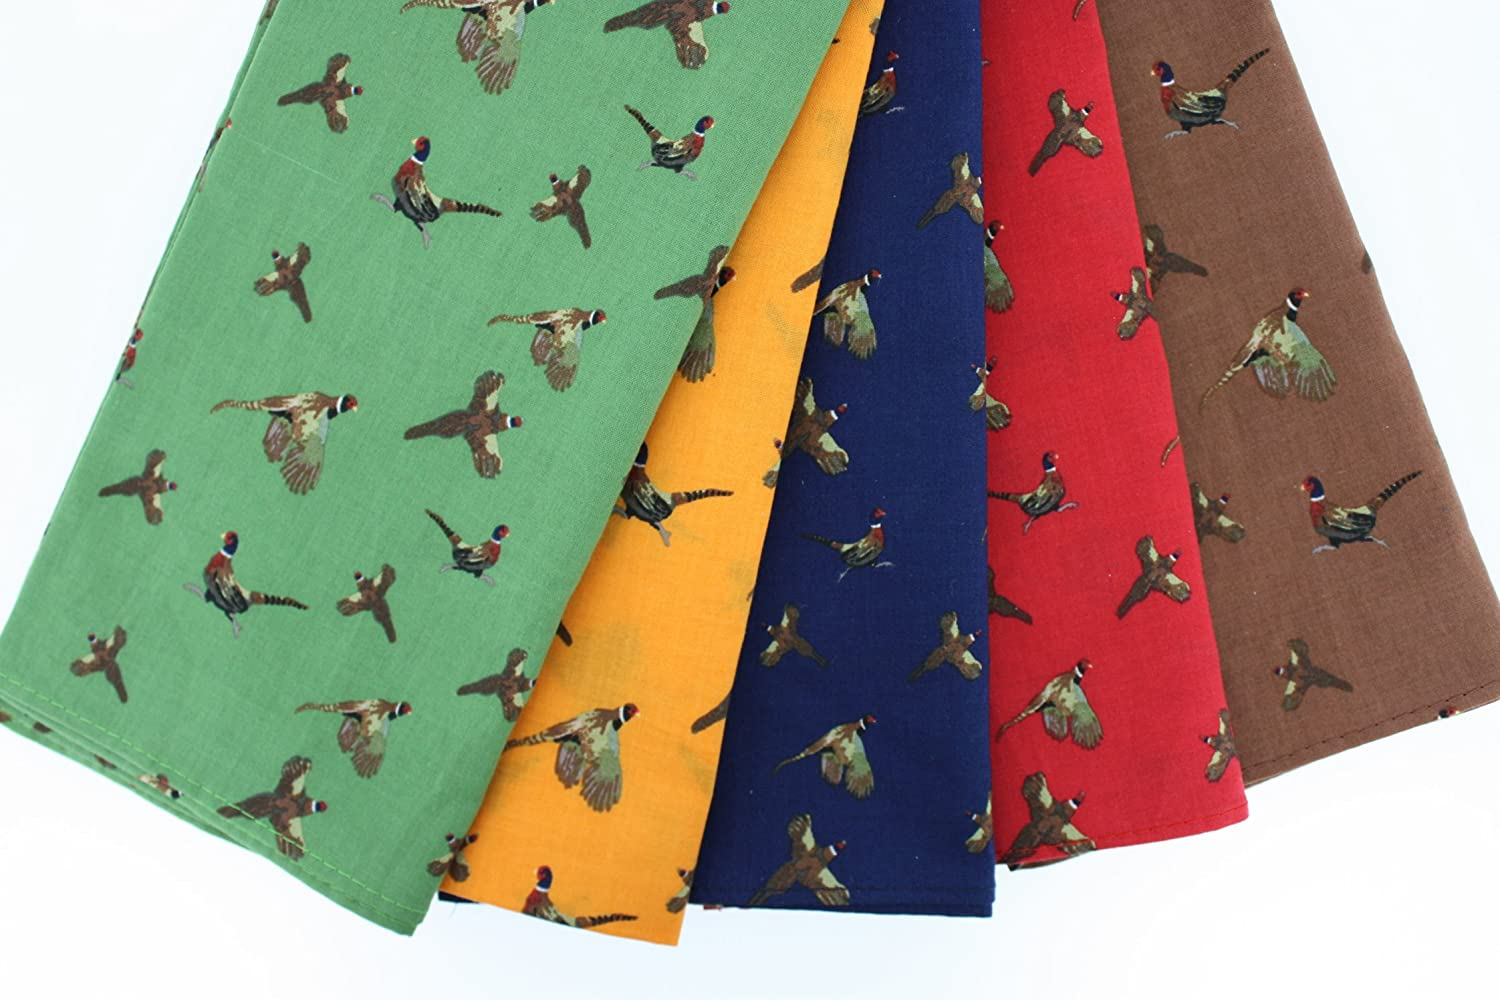 A pack of 5 Soprano luxury 100% cotton country handkerchiefs - 40cm x 40cm - with flying and running pheasants - 5 colours - yellow / brown / green / red / blue